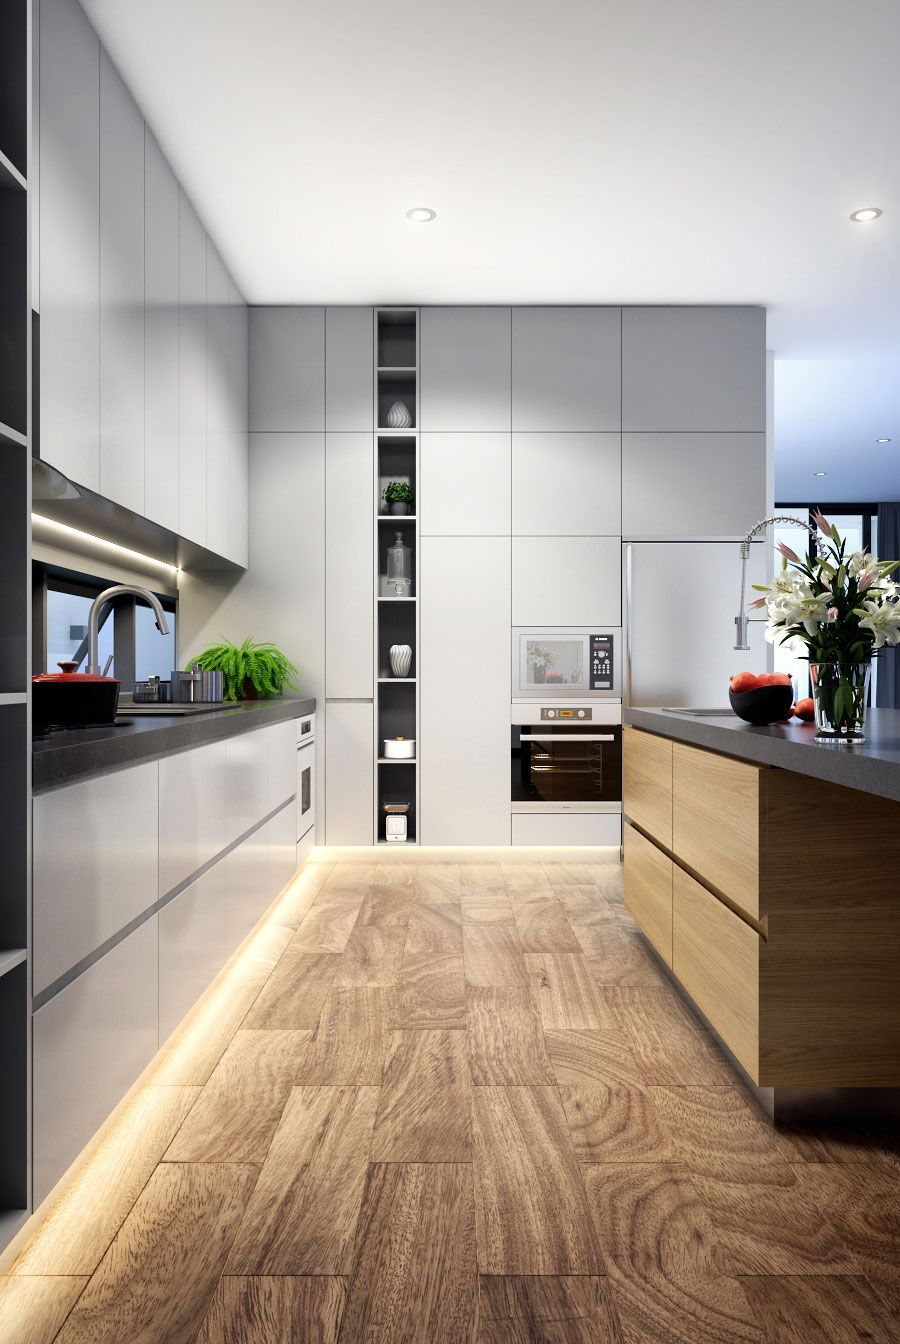 100 idee di cucine moderne con elementi in legno | Kitchens and ...